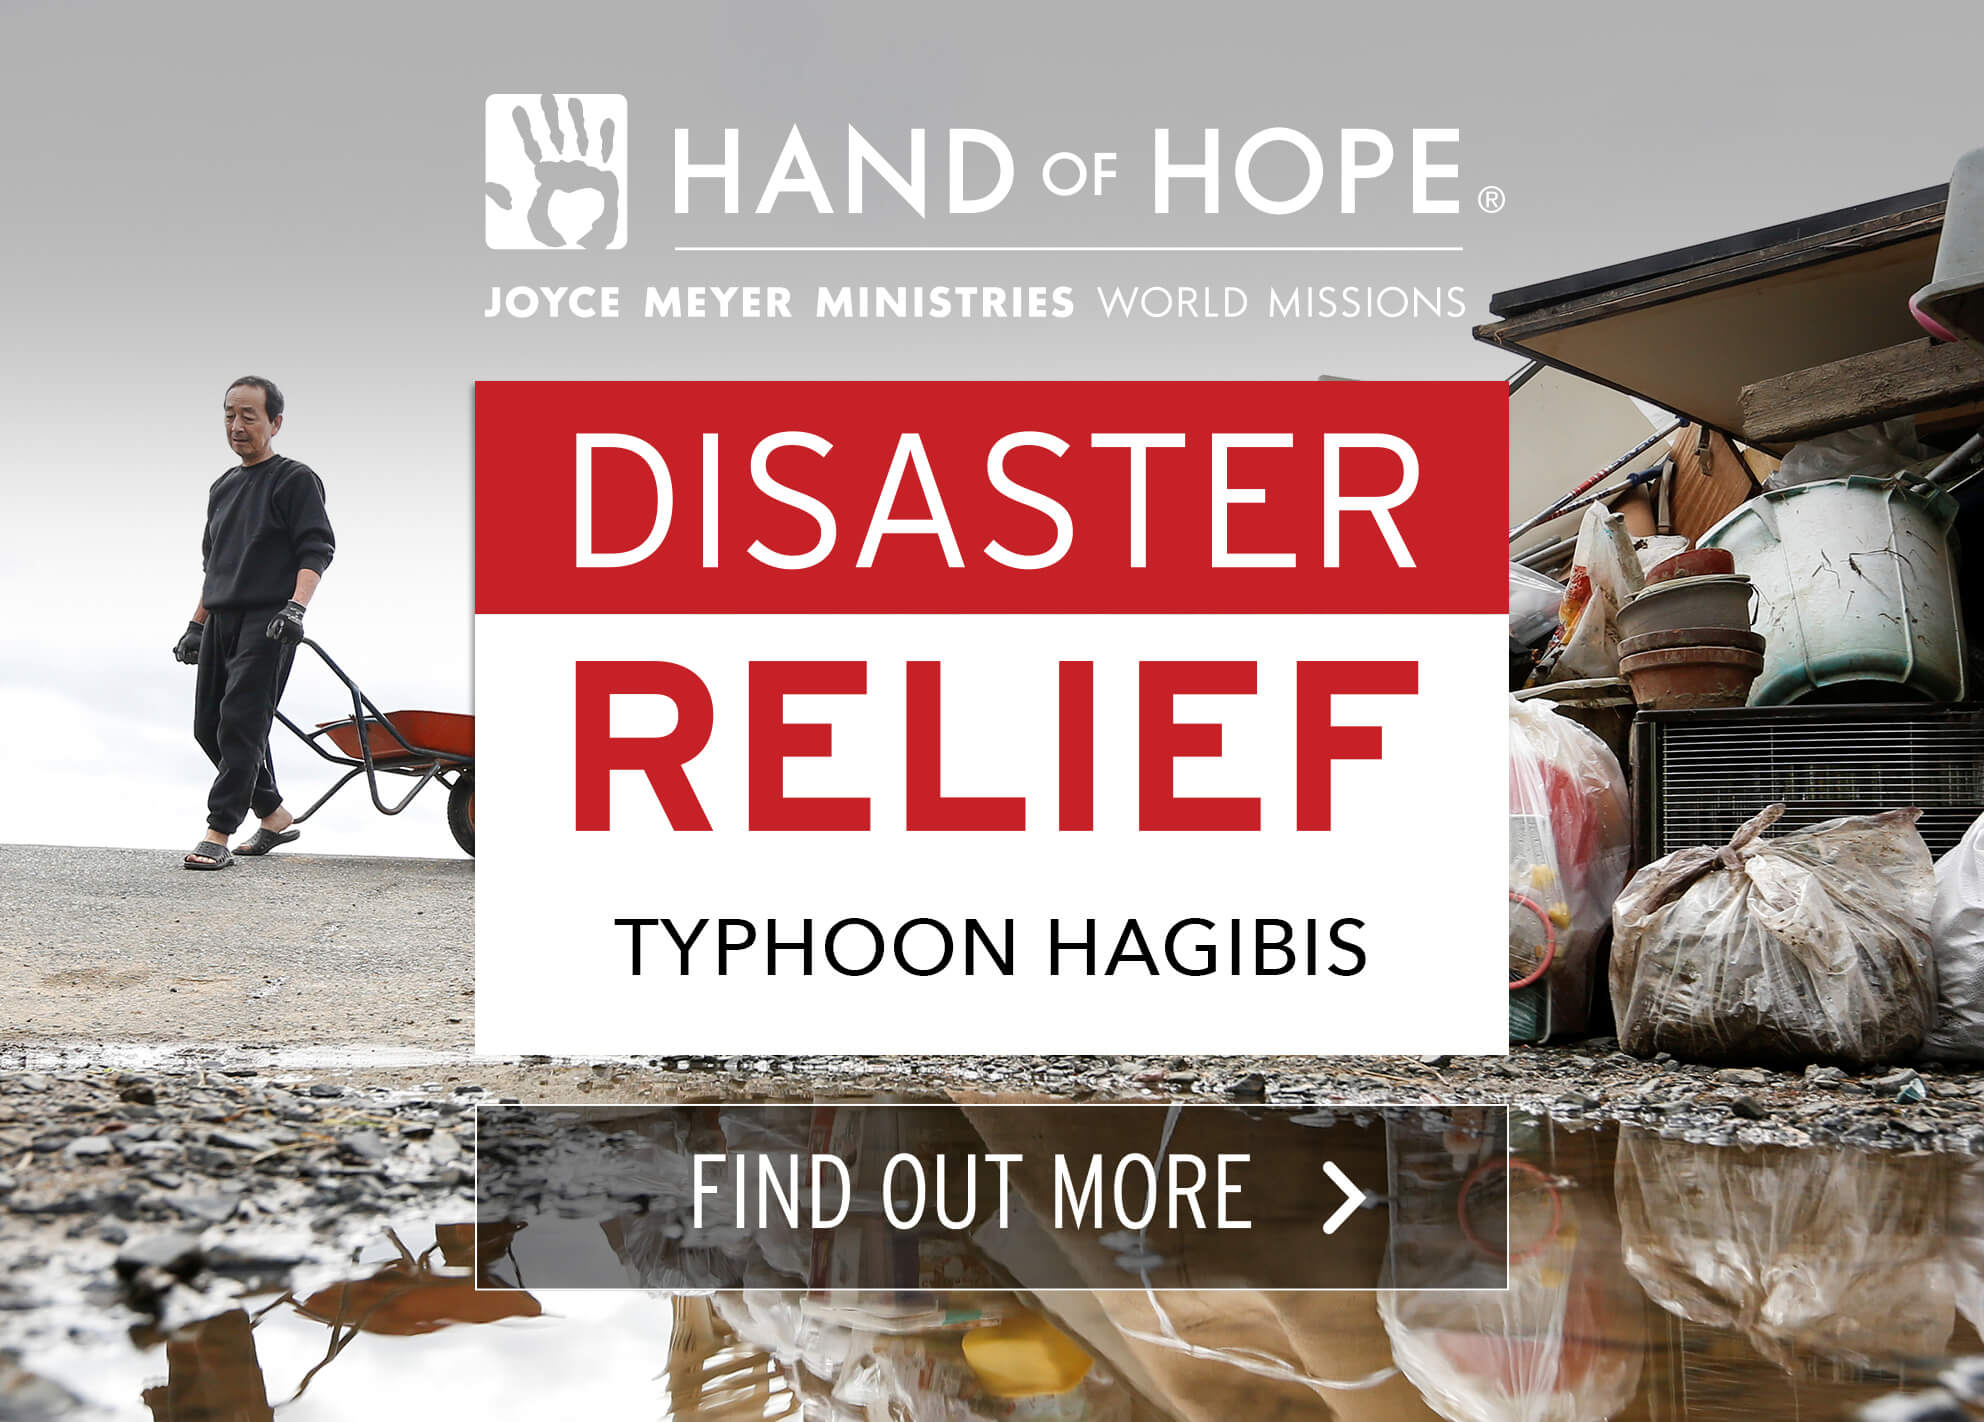 Hand of Hope, providing relief after Typhoon Hagibis